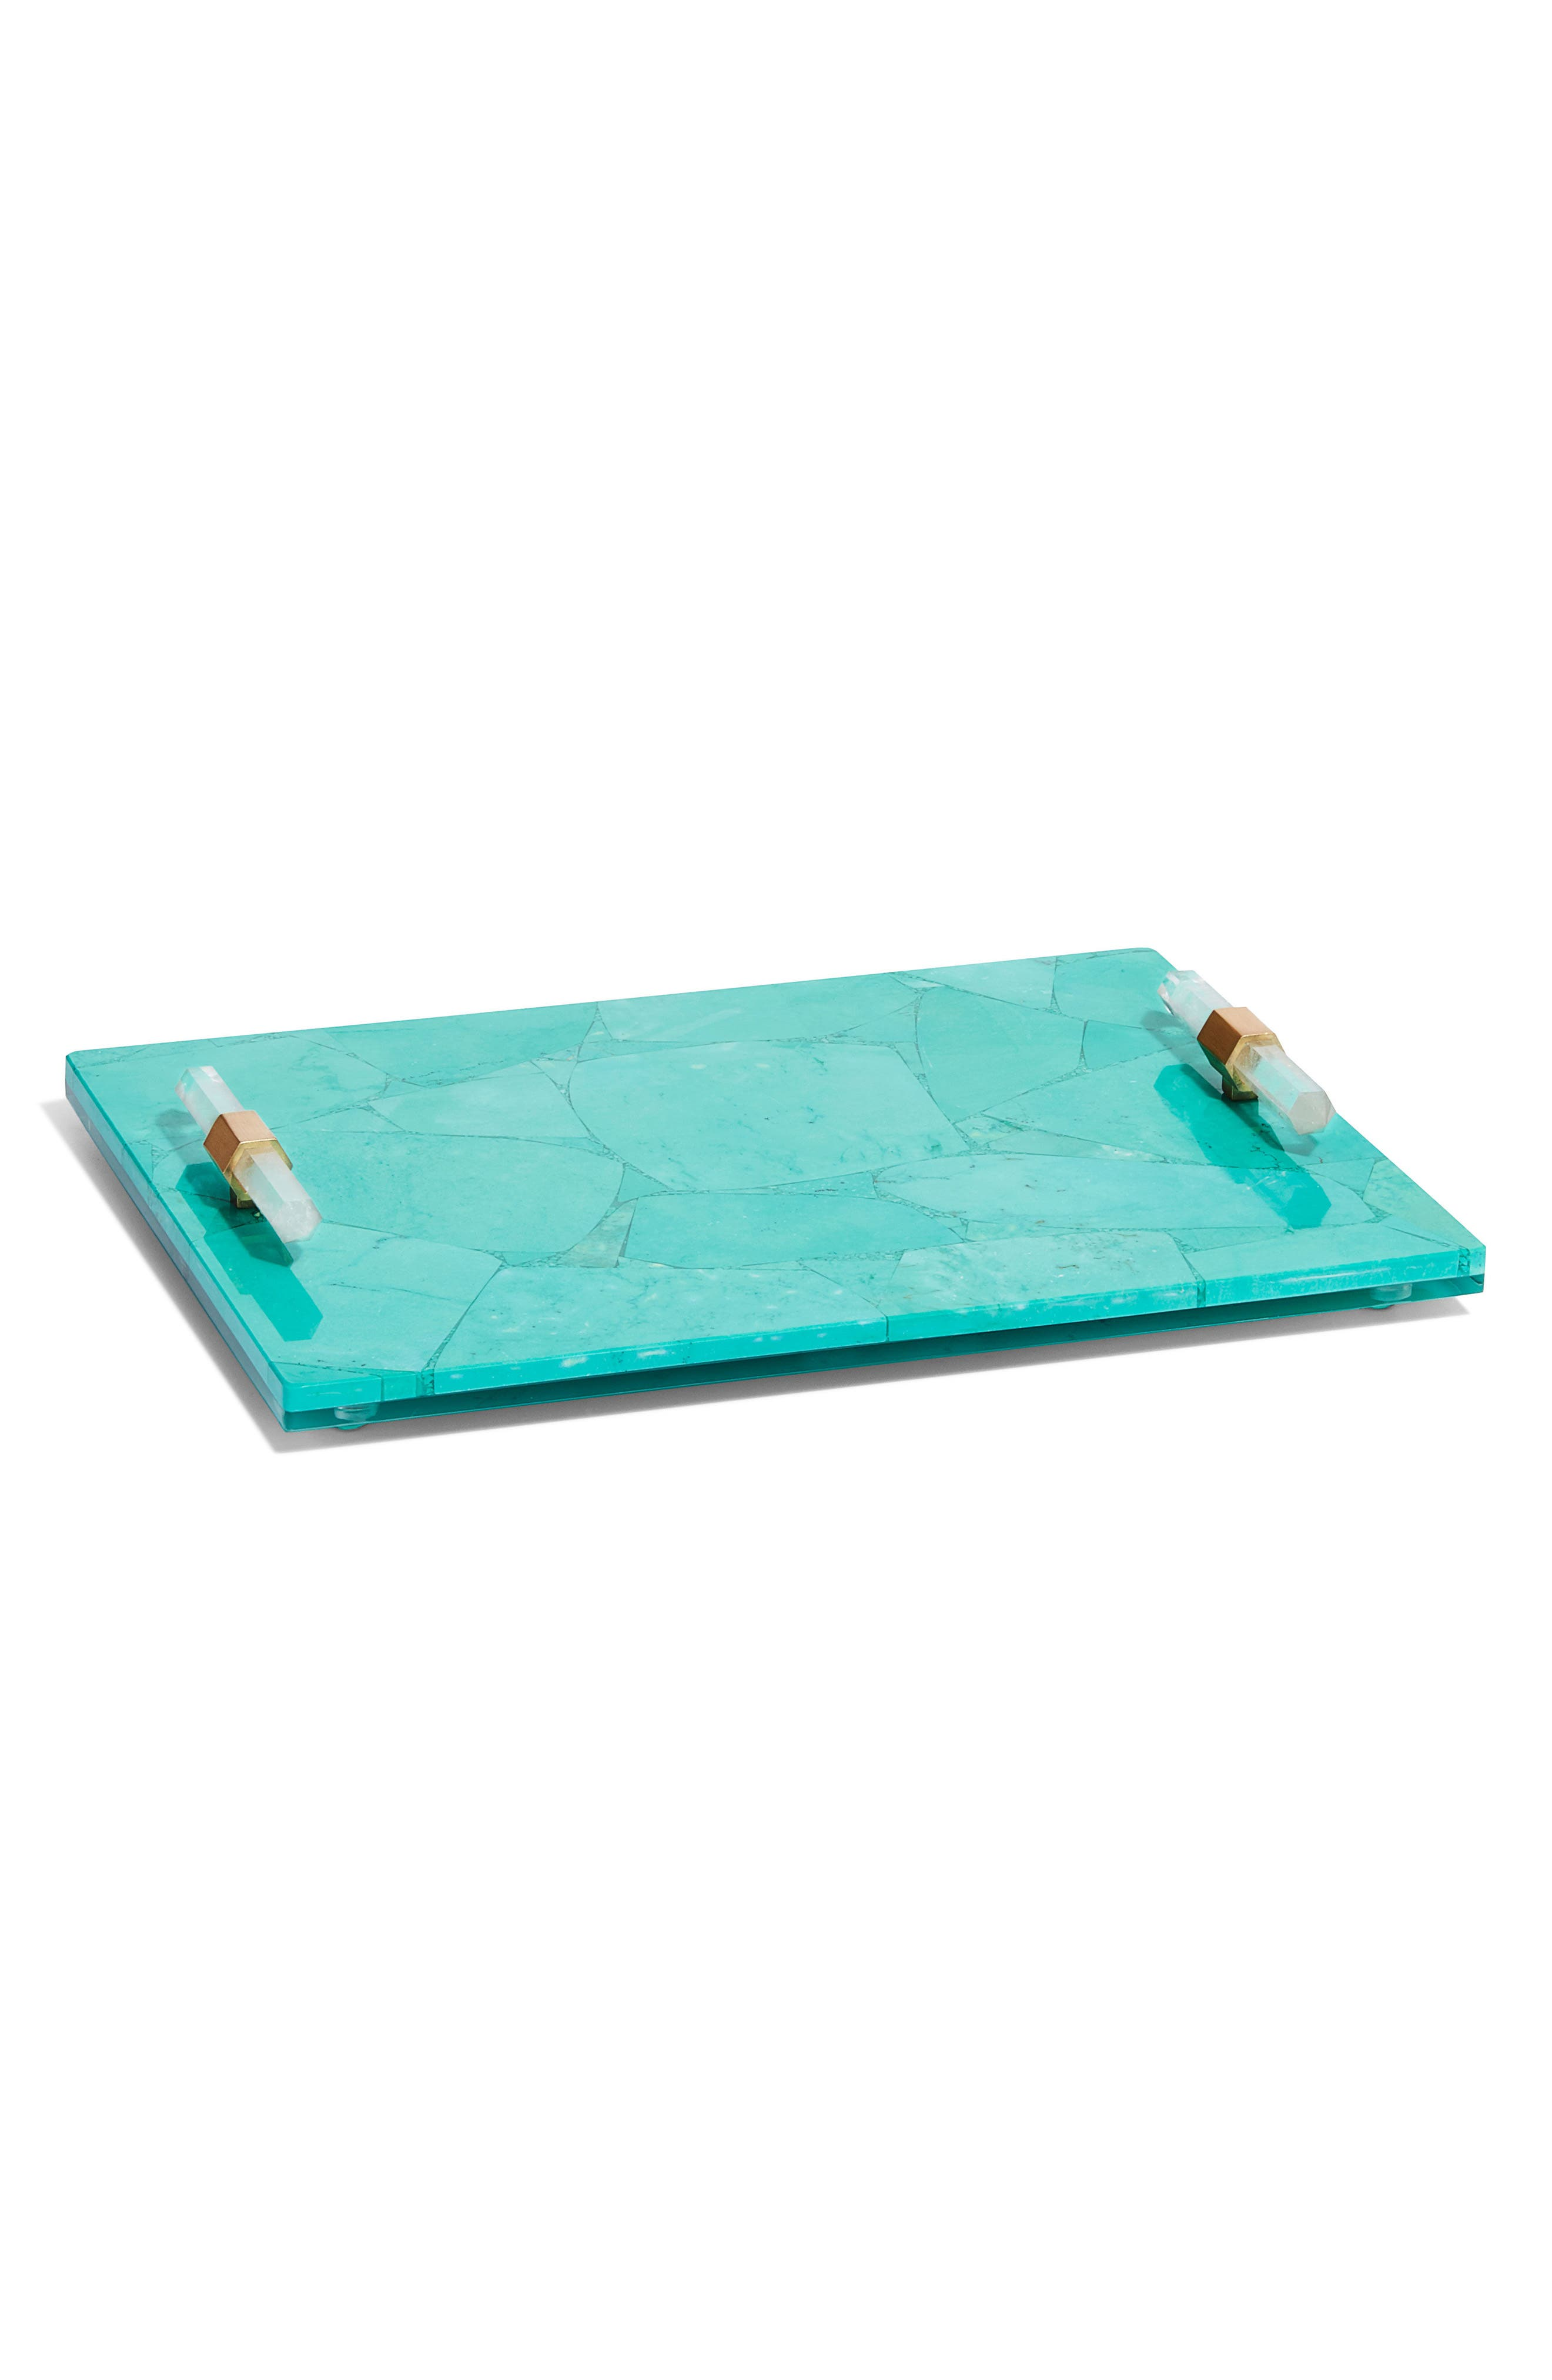 Small Stone Slab Tray,                         Main,                         color, Variegated Teal